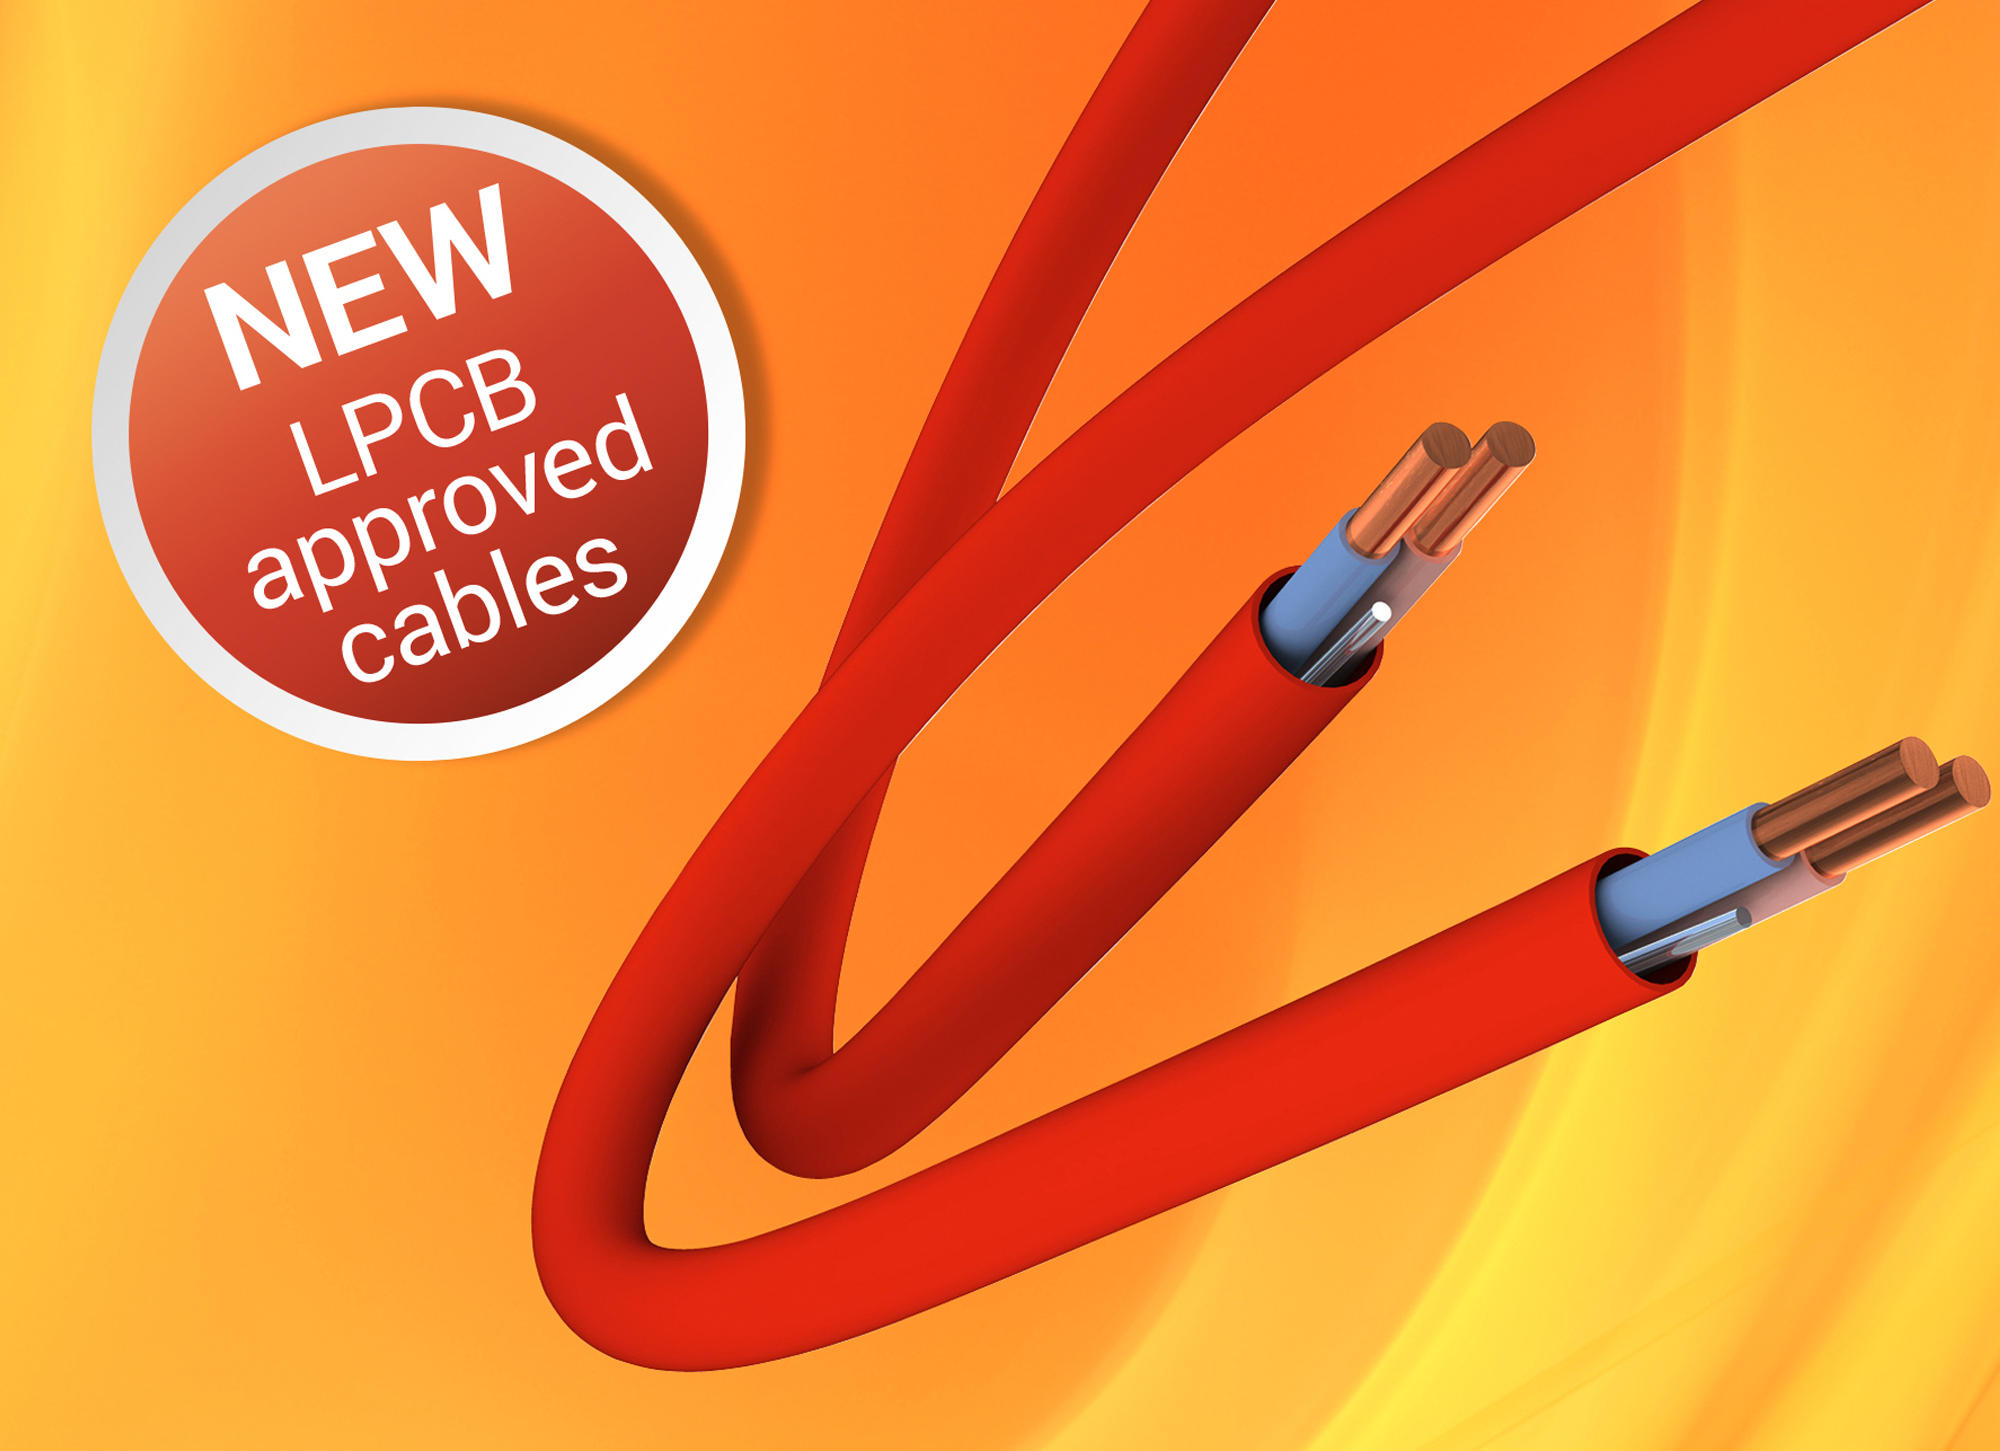 Belden expands Safe-T-Line portfolio with new ruggedized, fire-resistant circuit integrity cables